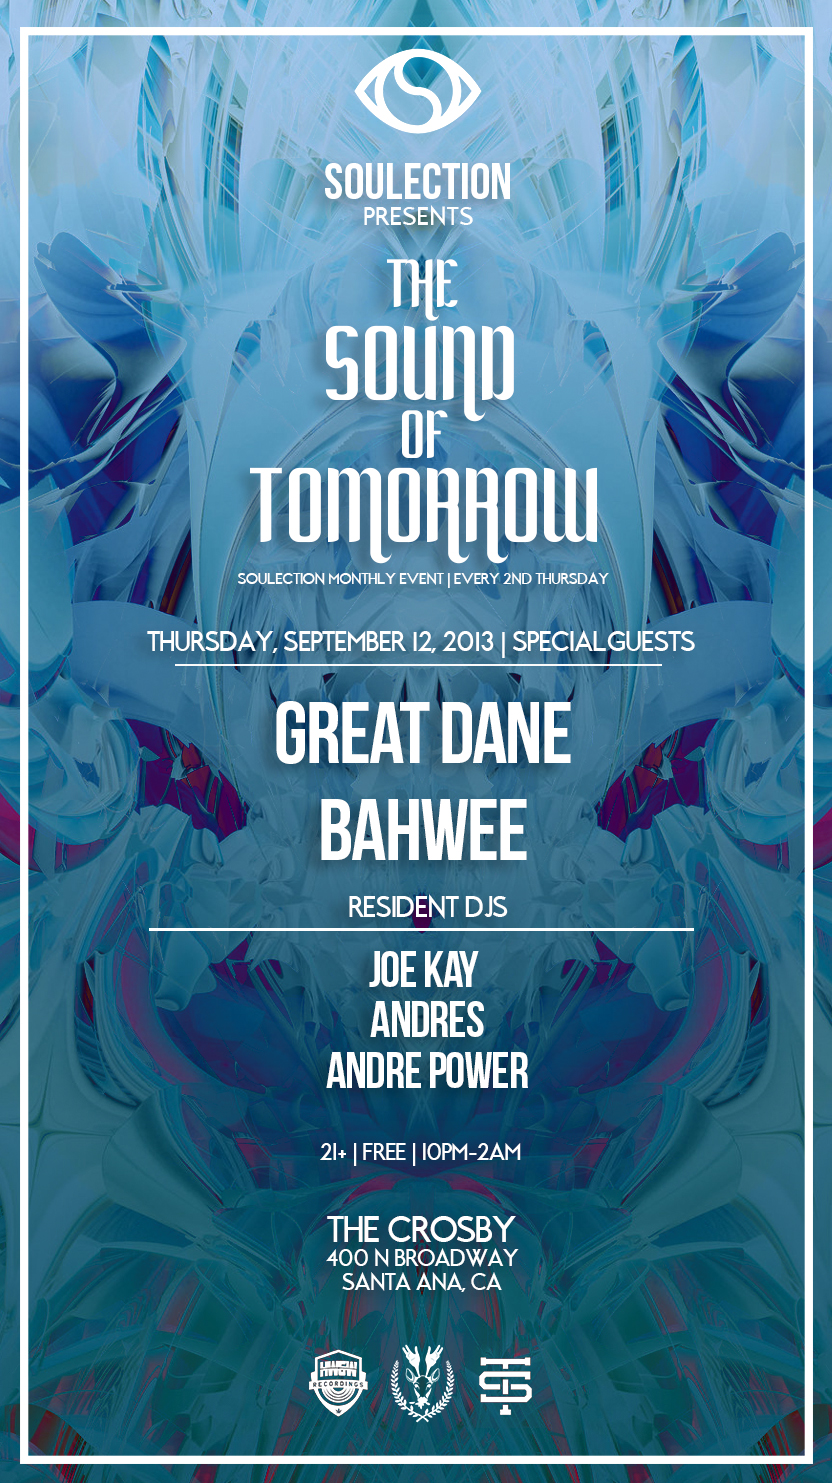 The Sound of Tomorrow | Every 2nd Thursday SPECIAL GUESTS  Great Dane (Alpha Pup/Team Supreme) Bahwee (Huh What and Where) After an intense session of over 6 Soulection events last month we are continuing the emphasis with Huh What and Where and Team Supreme affiliates. This time along we are bringing in the heavy hitter Great Dane who's live presence is similar to Brian Urlacher being on stage dropping the craziest bangers that will push you and your girl a few feet back. Representing one of our favorite crews: Team Supreme! On the other hand we have the true mastermind Bahwee who is behind one of the most exciting labels (HW&W) out in the world right now. He subtly produces heaters that you must hear by coming to this event. The Sound of Tomorrow is going to be an evening of quality music that you don't want to miss. Come see what all the talk is about. It's really about the music, nothing more. See you soon. Resident DJ's  Joe Kay  Andres Andre Power 21+ | FREE all night | 10pm-2am The Crosby 400 N.Broadway Santa Ana,CA Discover:  http://imagreatdane.com/ http://huhwhatandwhere.com/ Great Dane https://soundcloud.com/grrrreatdane Bahwee https://soundcloud.com/bahwee